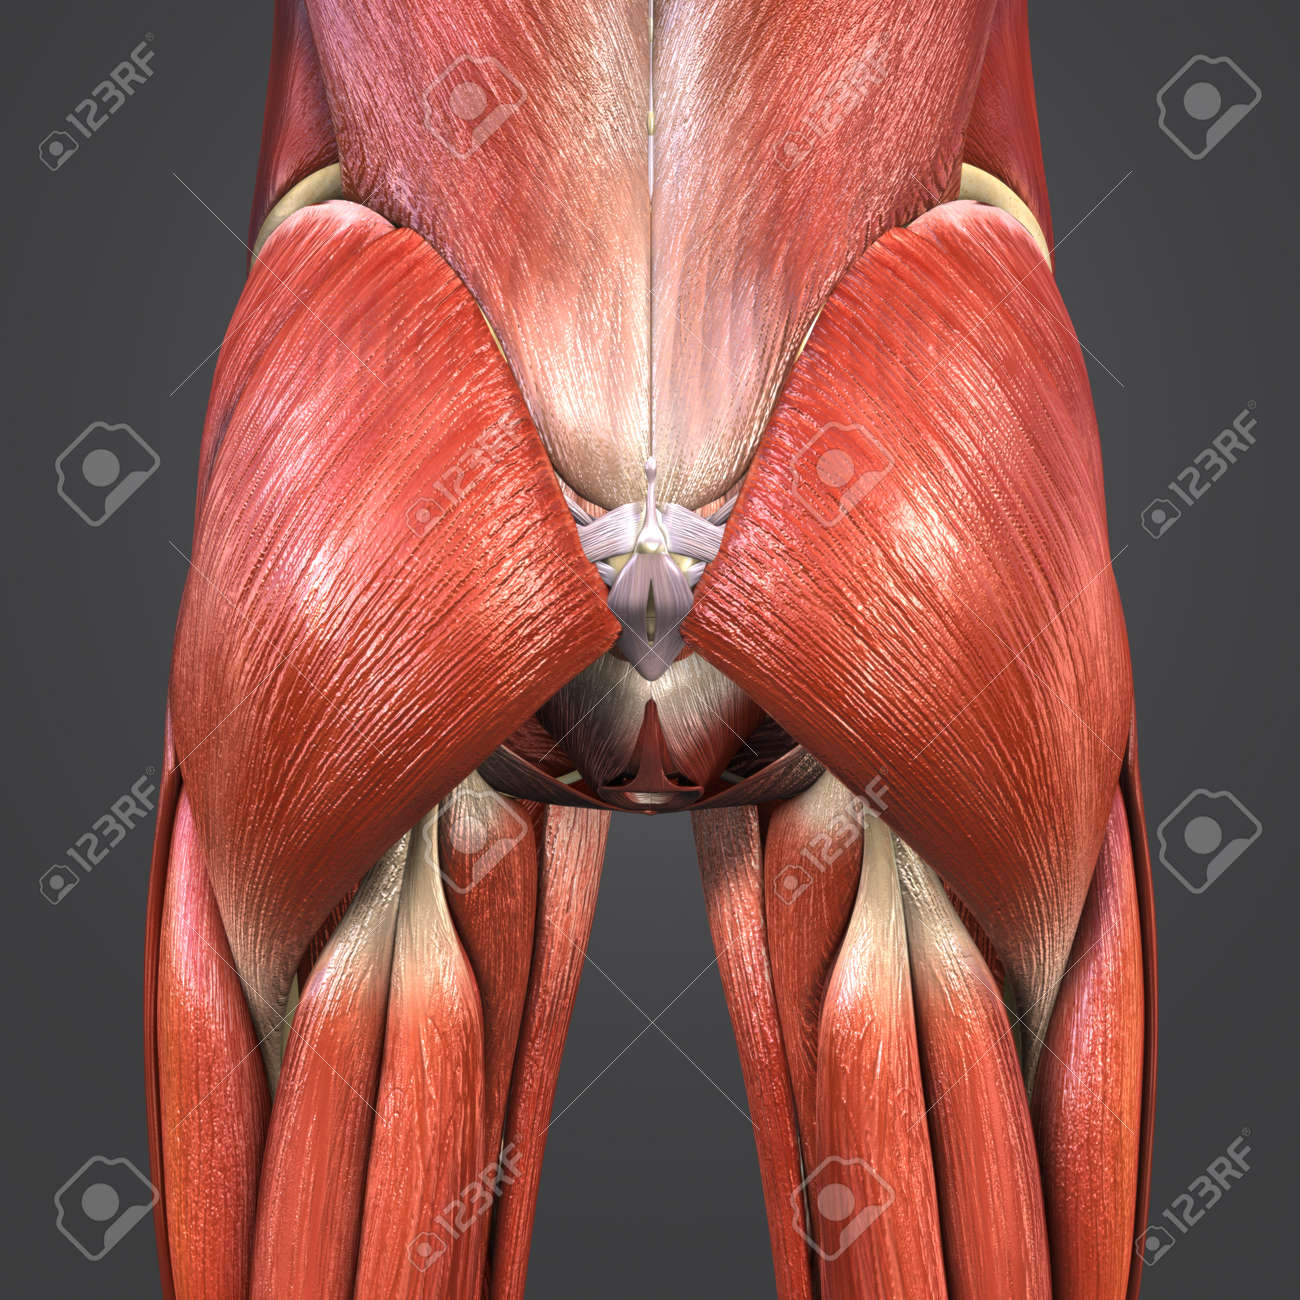 Hip Muscles Anatomy With Lymph Nodes Stock Photo, Picture And ...